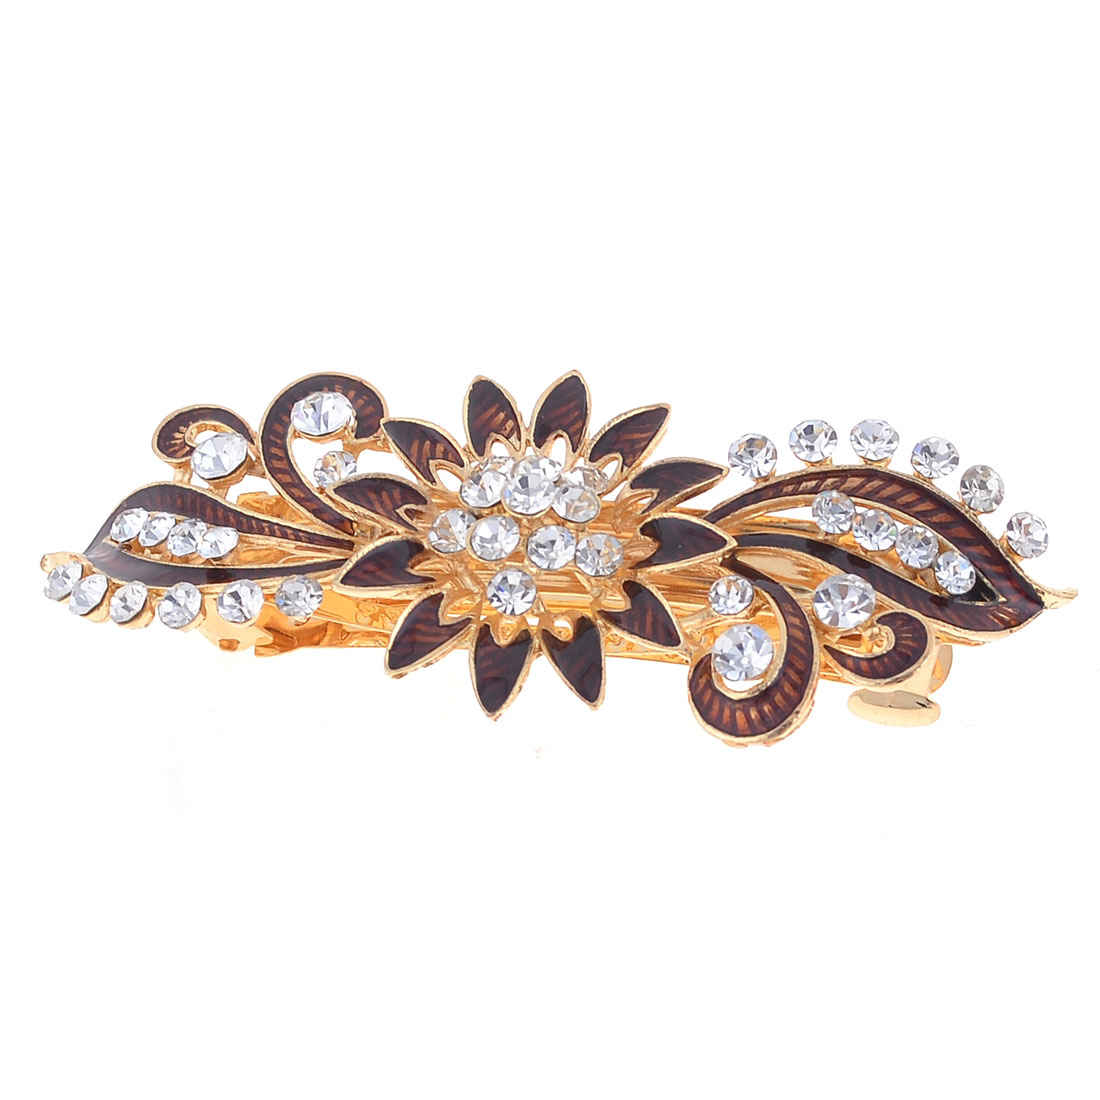 Shiny Rhinestone Chocolate Color Flower Design Hair Clip Barrette for Ladies